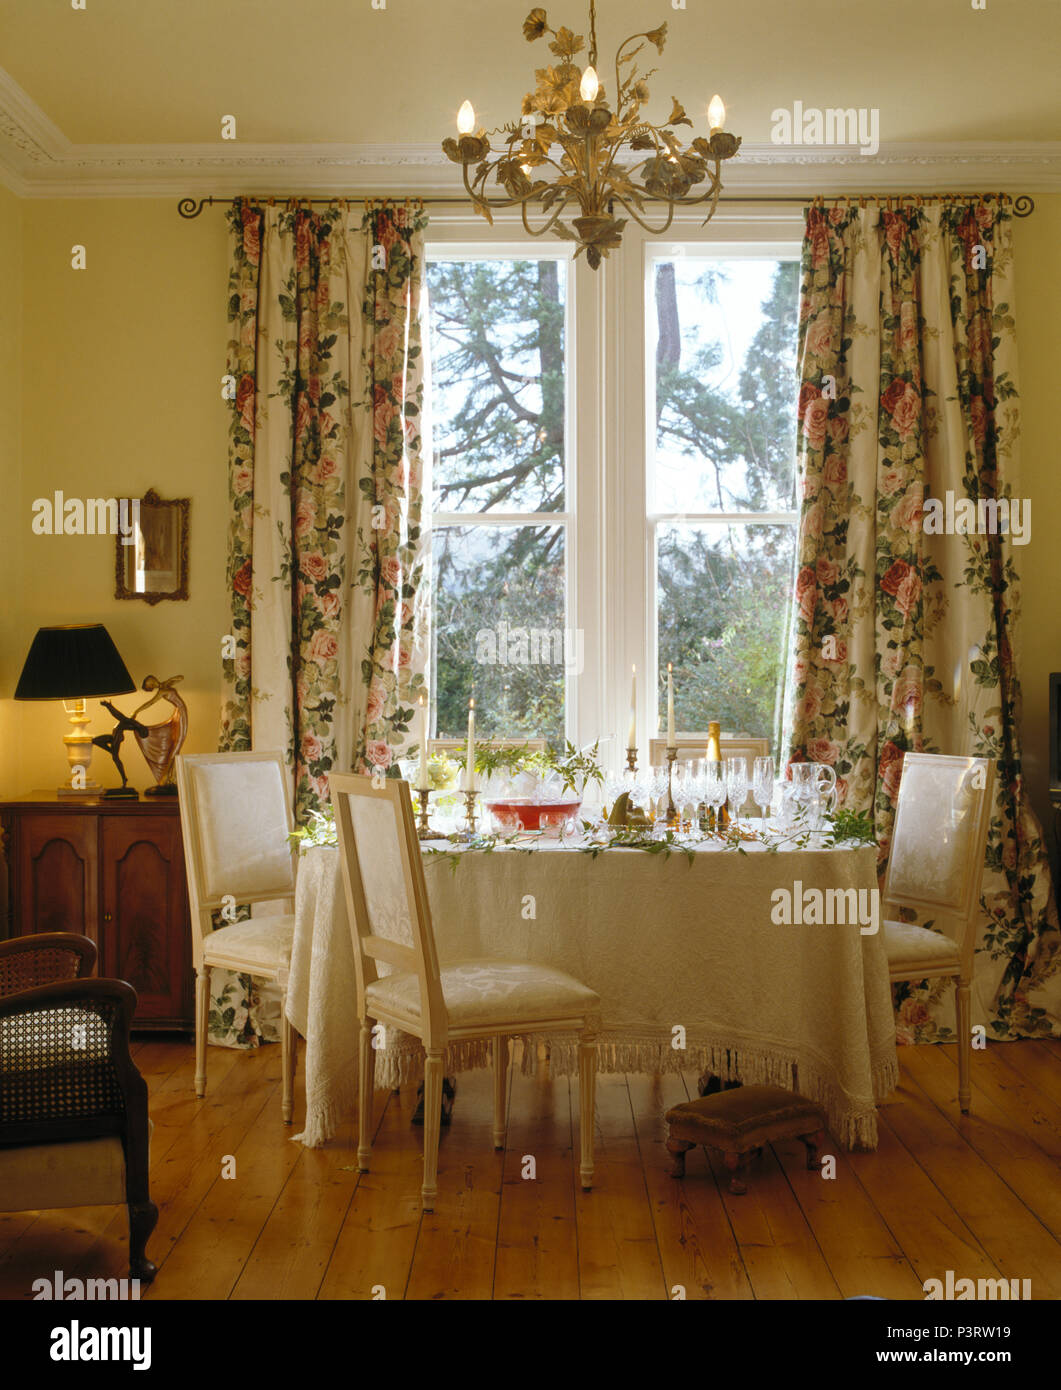 White Upholstered Chairs And Table With White Cloth In Front Of Window With Floral Curtains In Country Dining Room Stock Photo Alamy